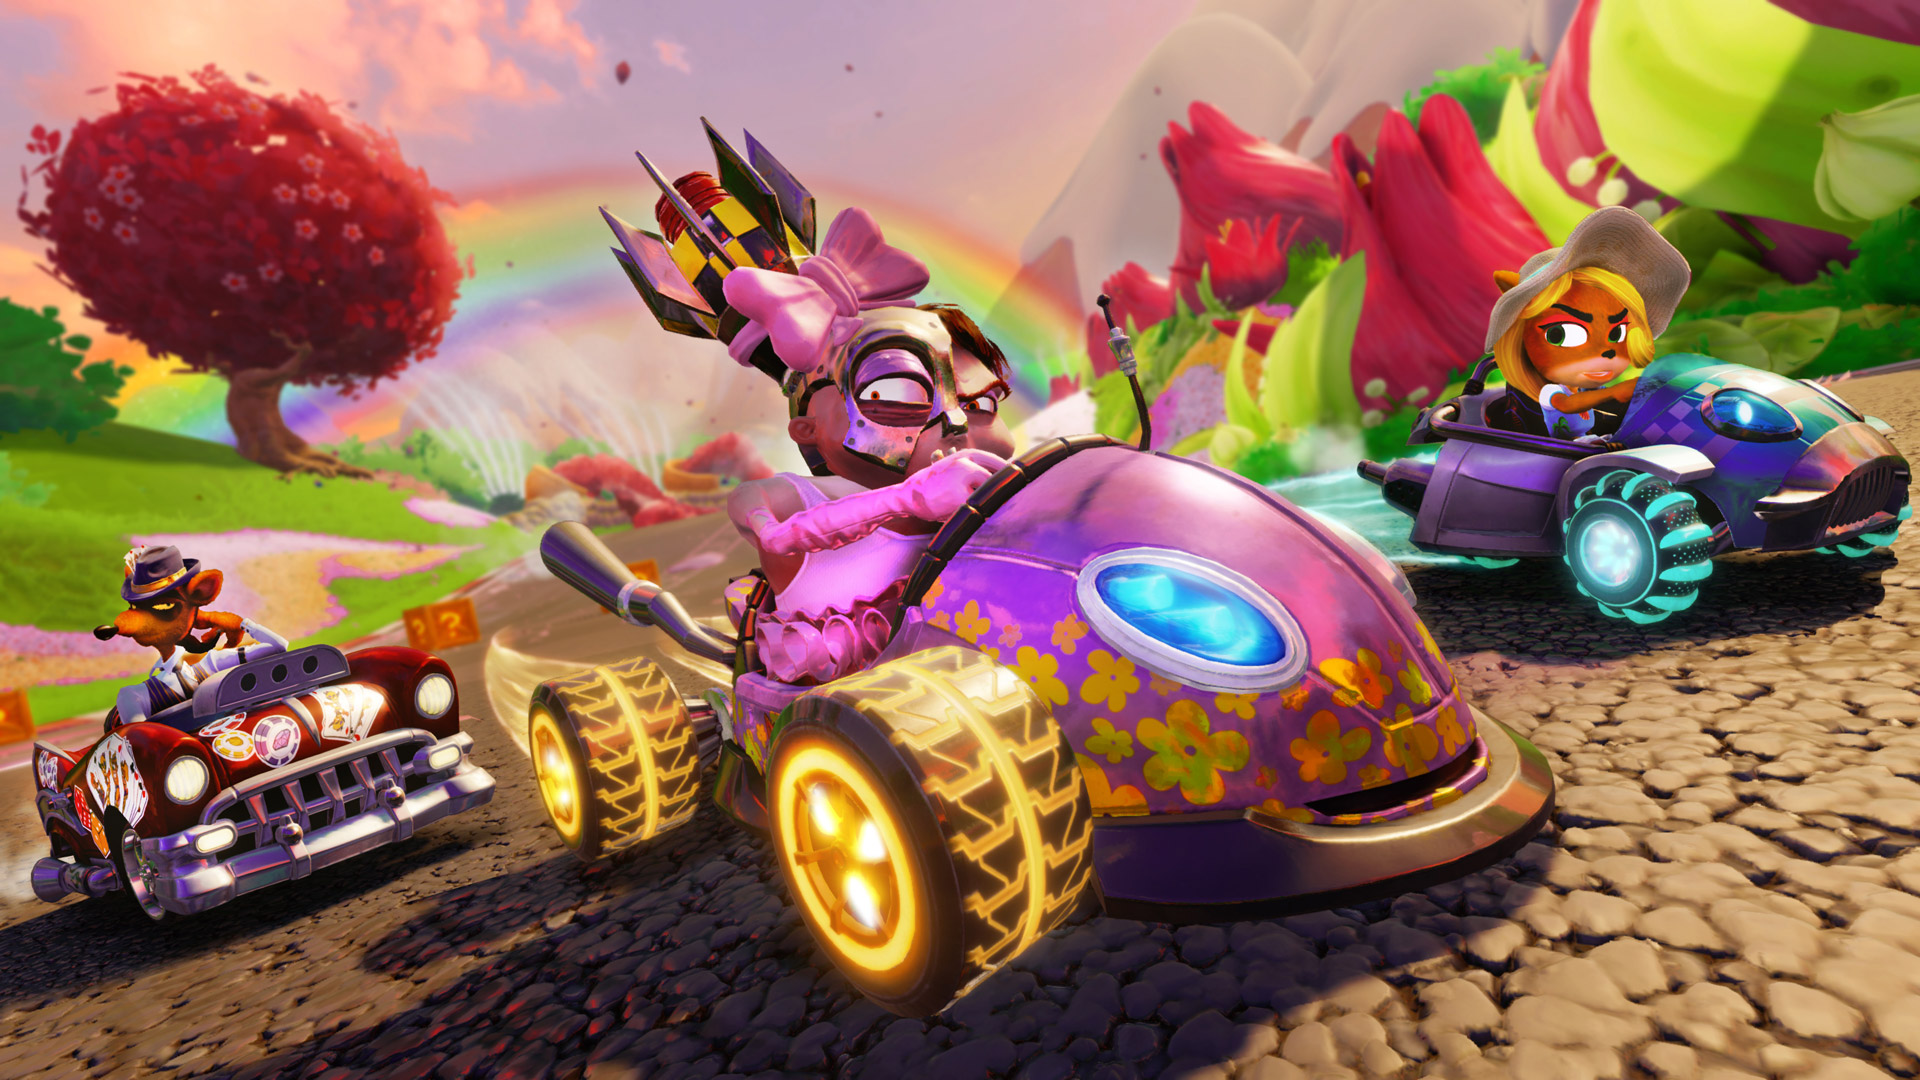 Crash Team Racing Nitro-Fueled Wallpaper in 1920x1080